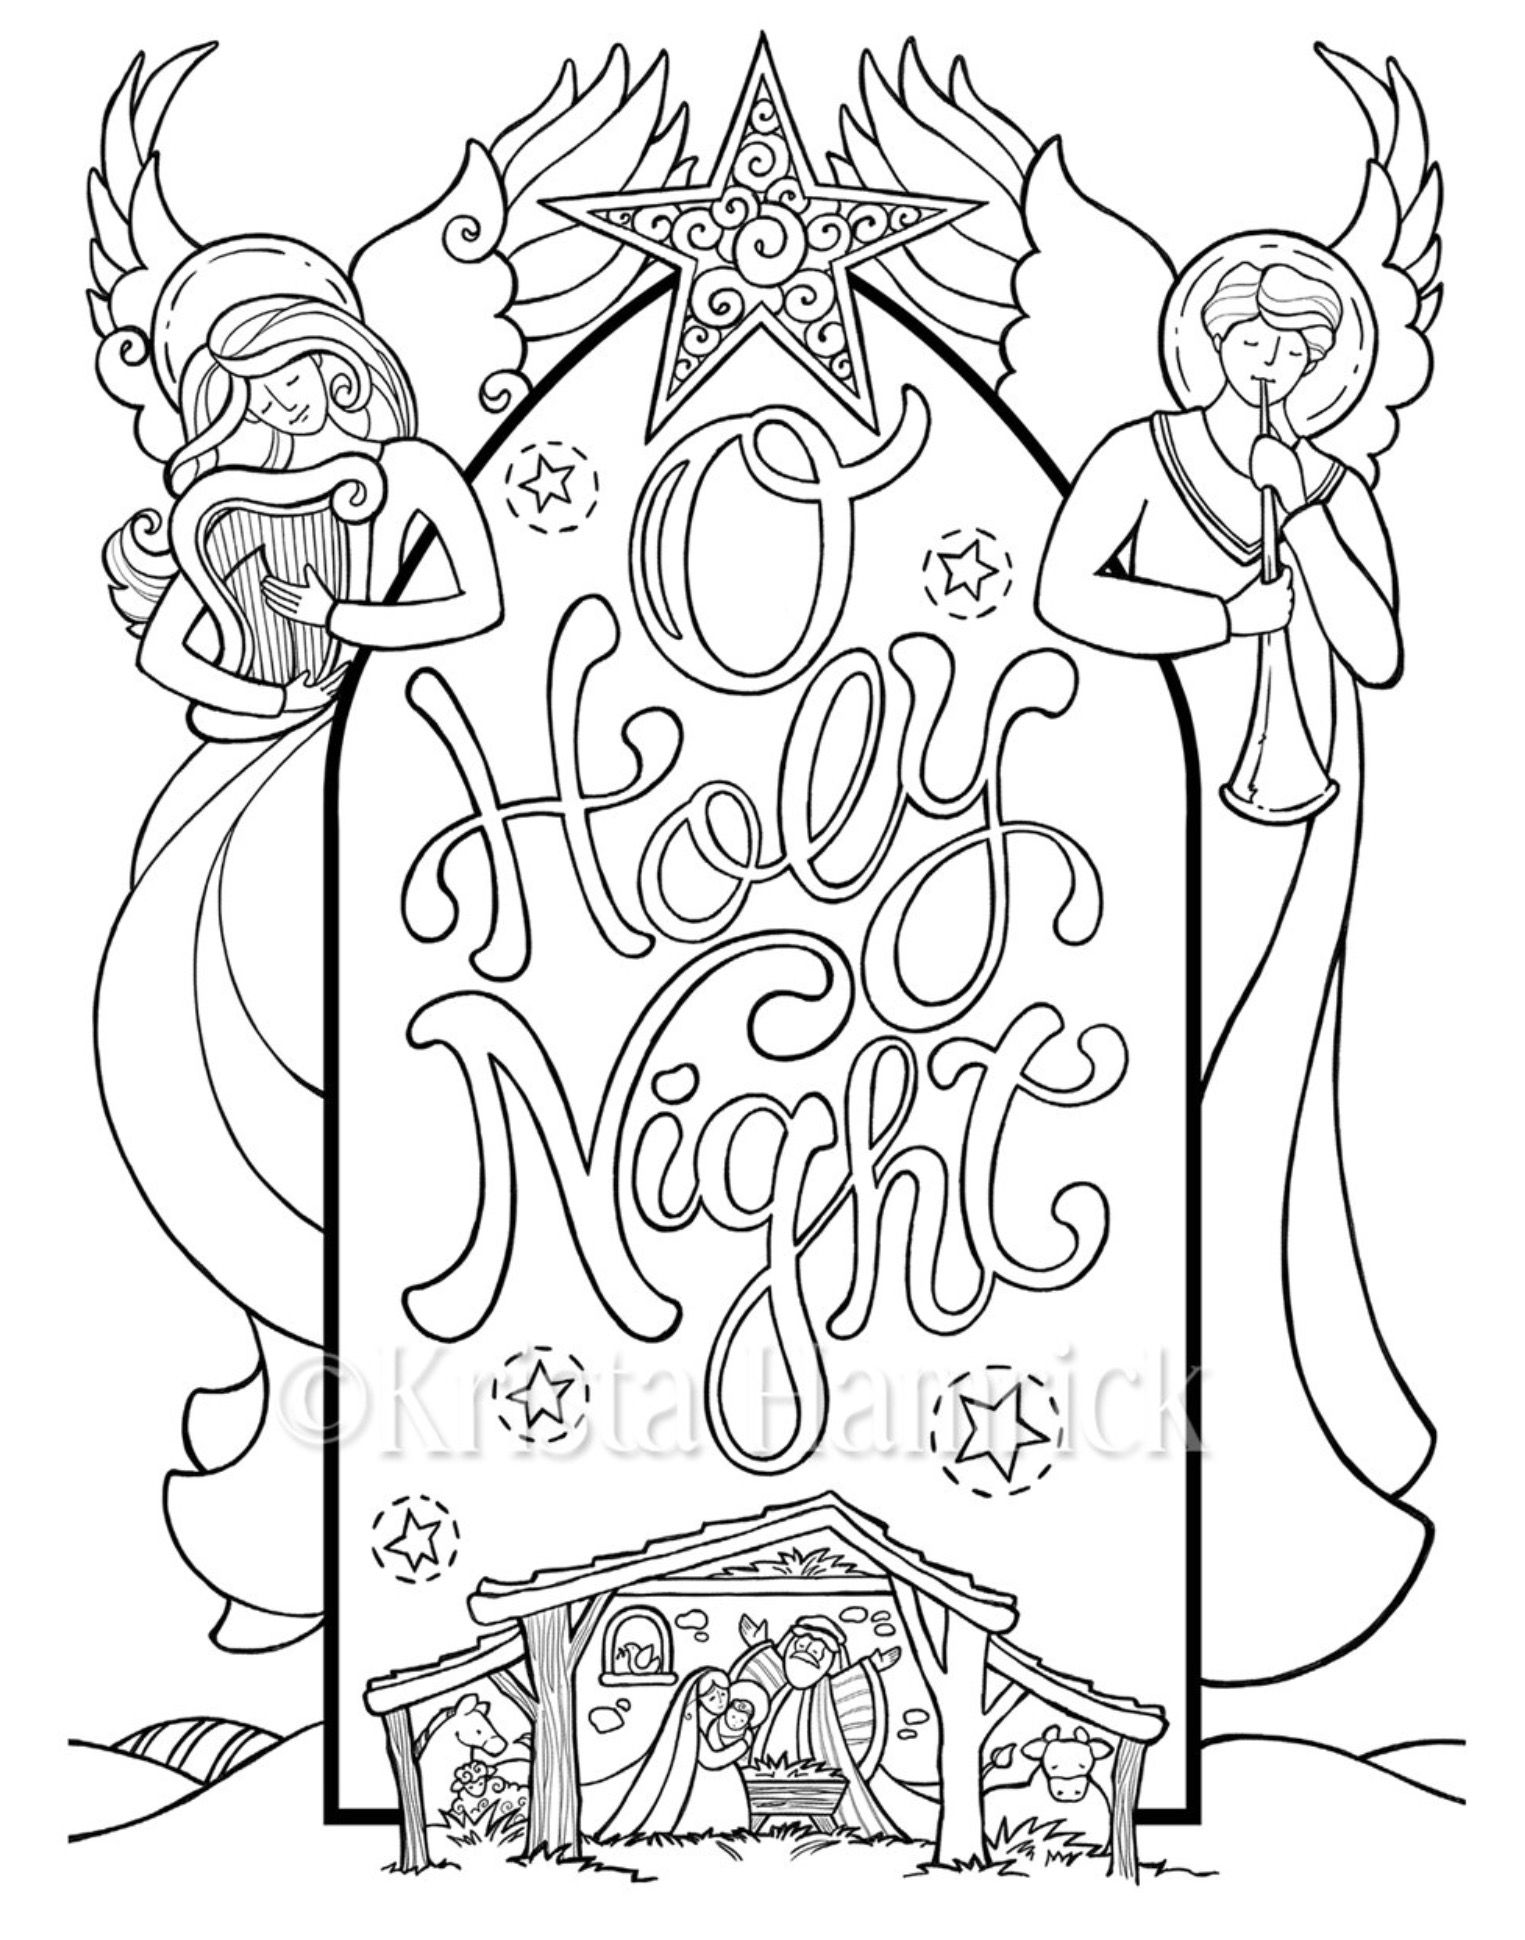 Pin By Annette Epley On Free Prints Nativity Coloring Pages Christmas Coloring Pages Coloring Pages